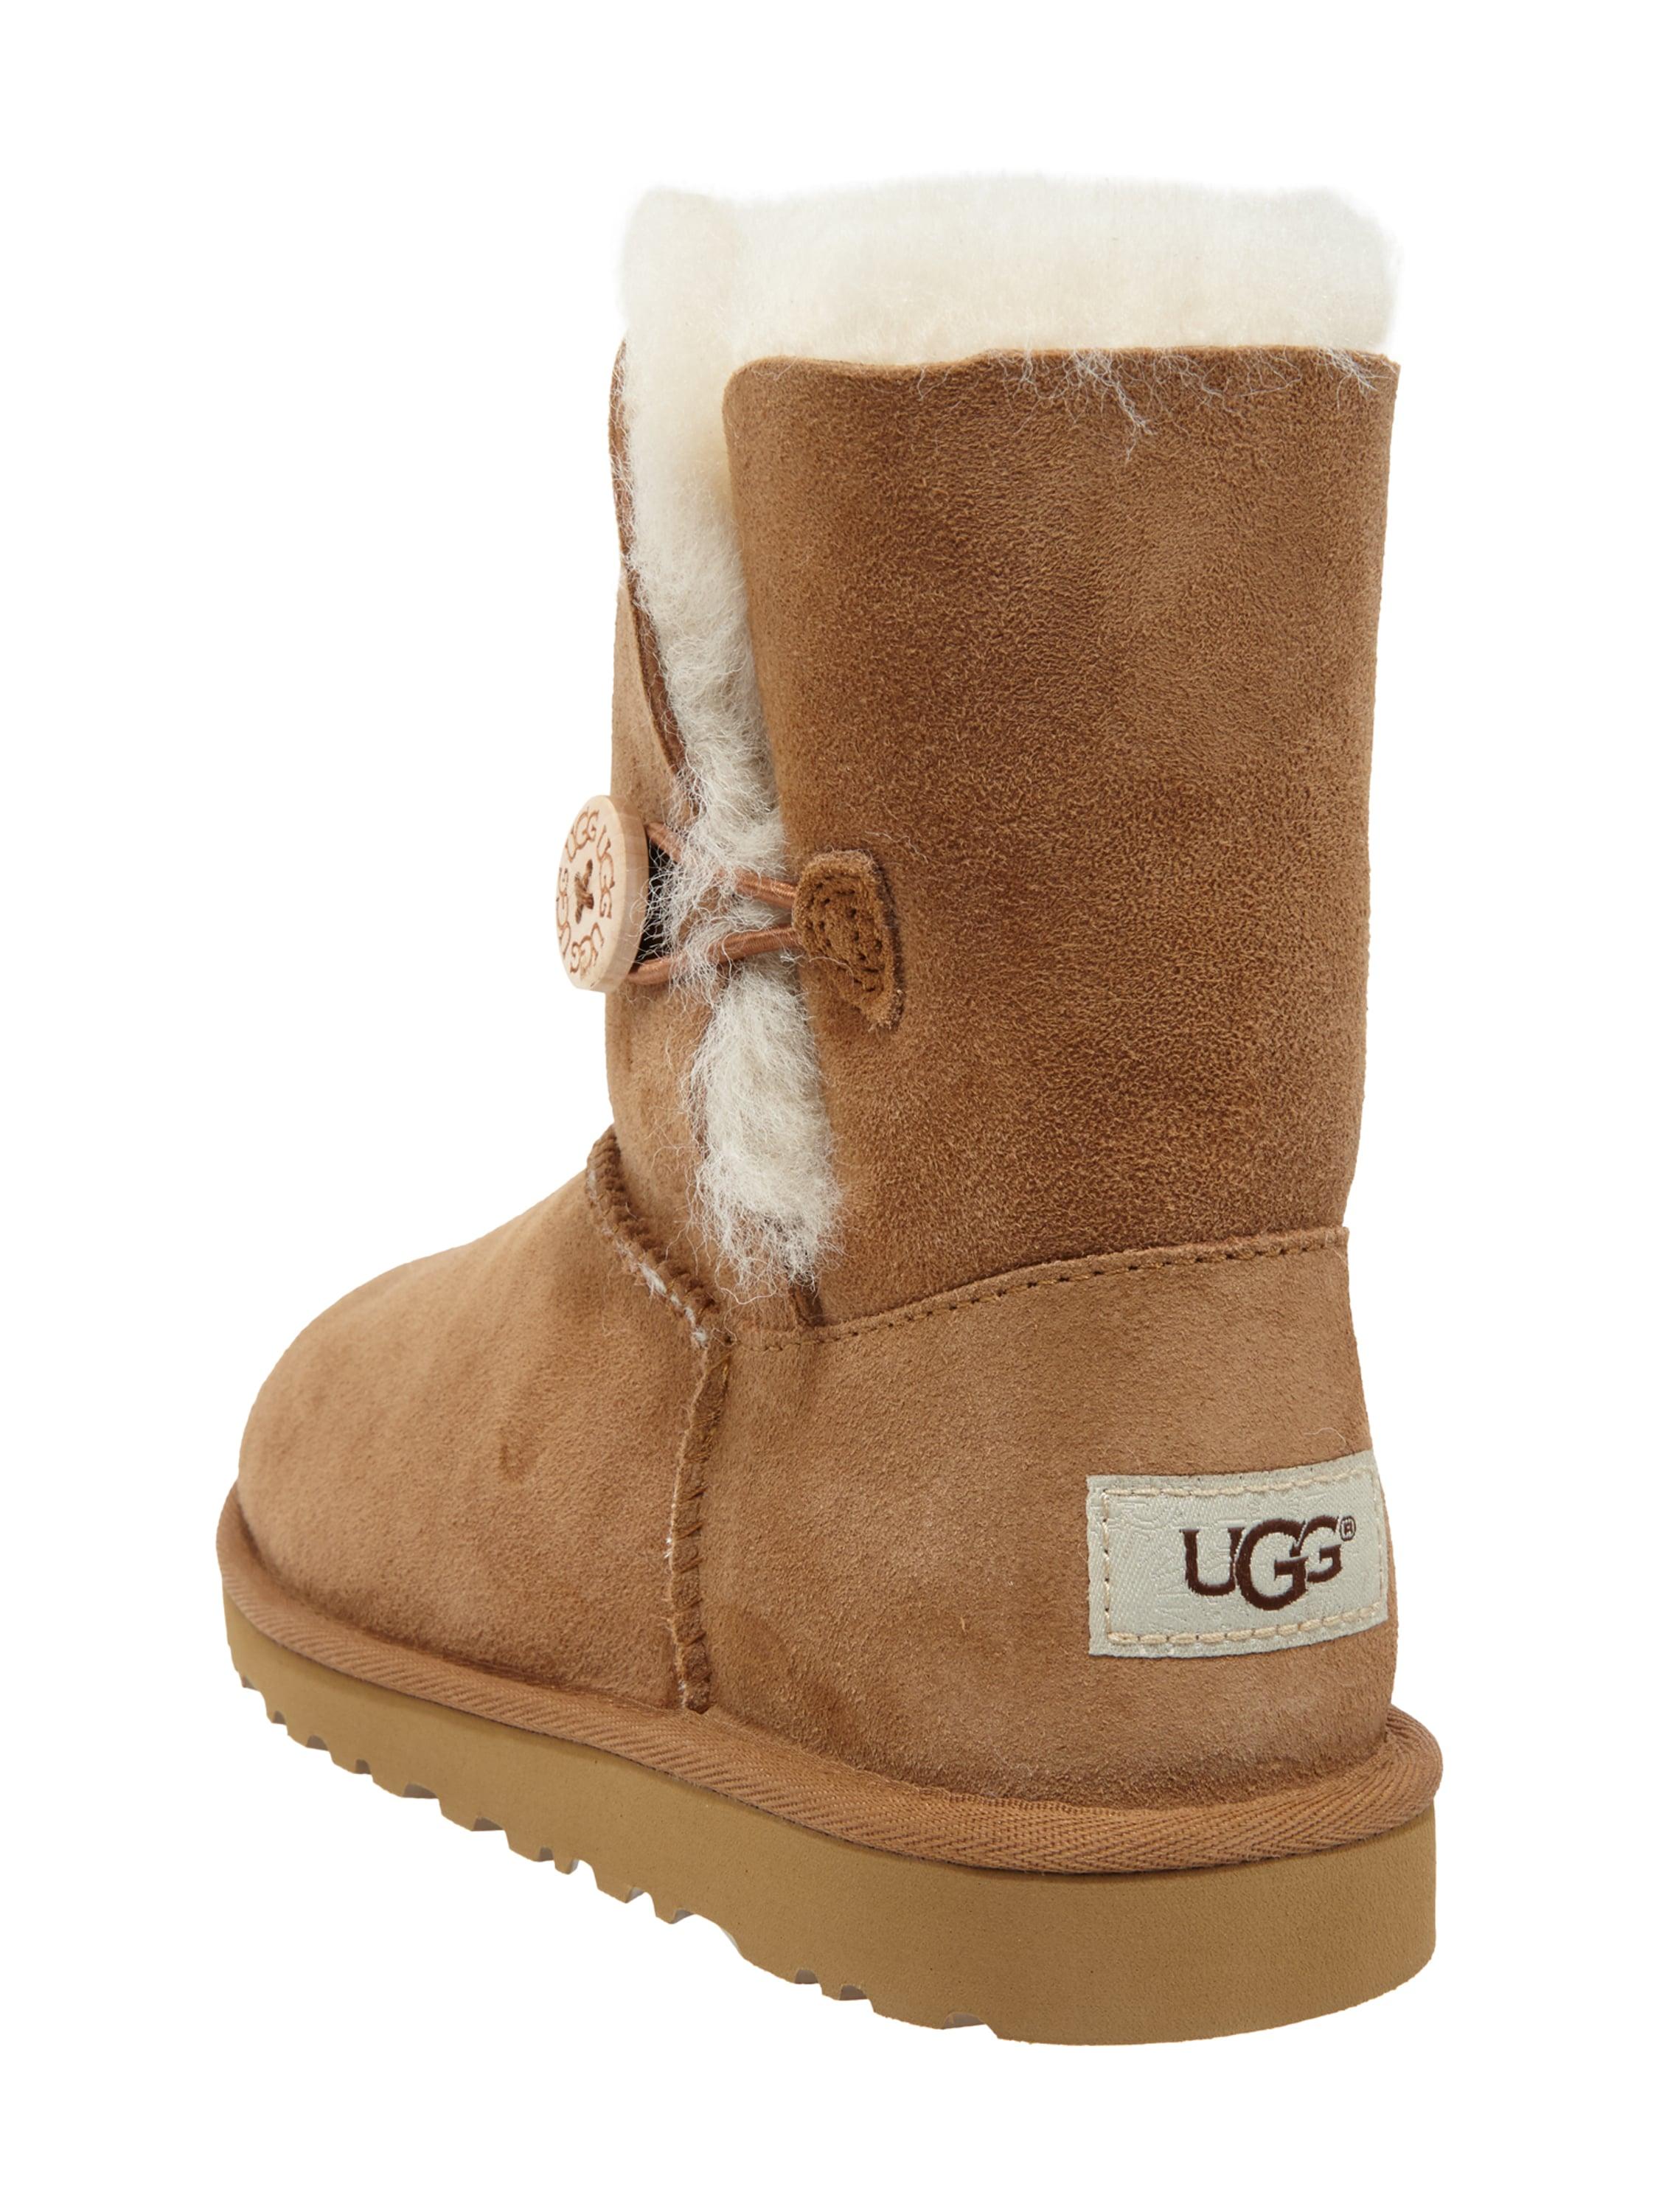 UGG® Mini Bailey Bow Sparkle Genuine Shearling Boot (Women), UGG® Customizable /10 (1, reviews),+ followers on Twitter.